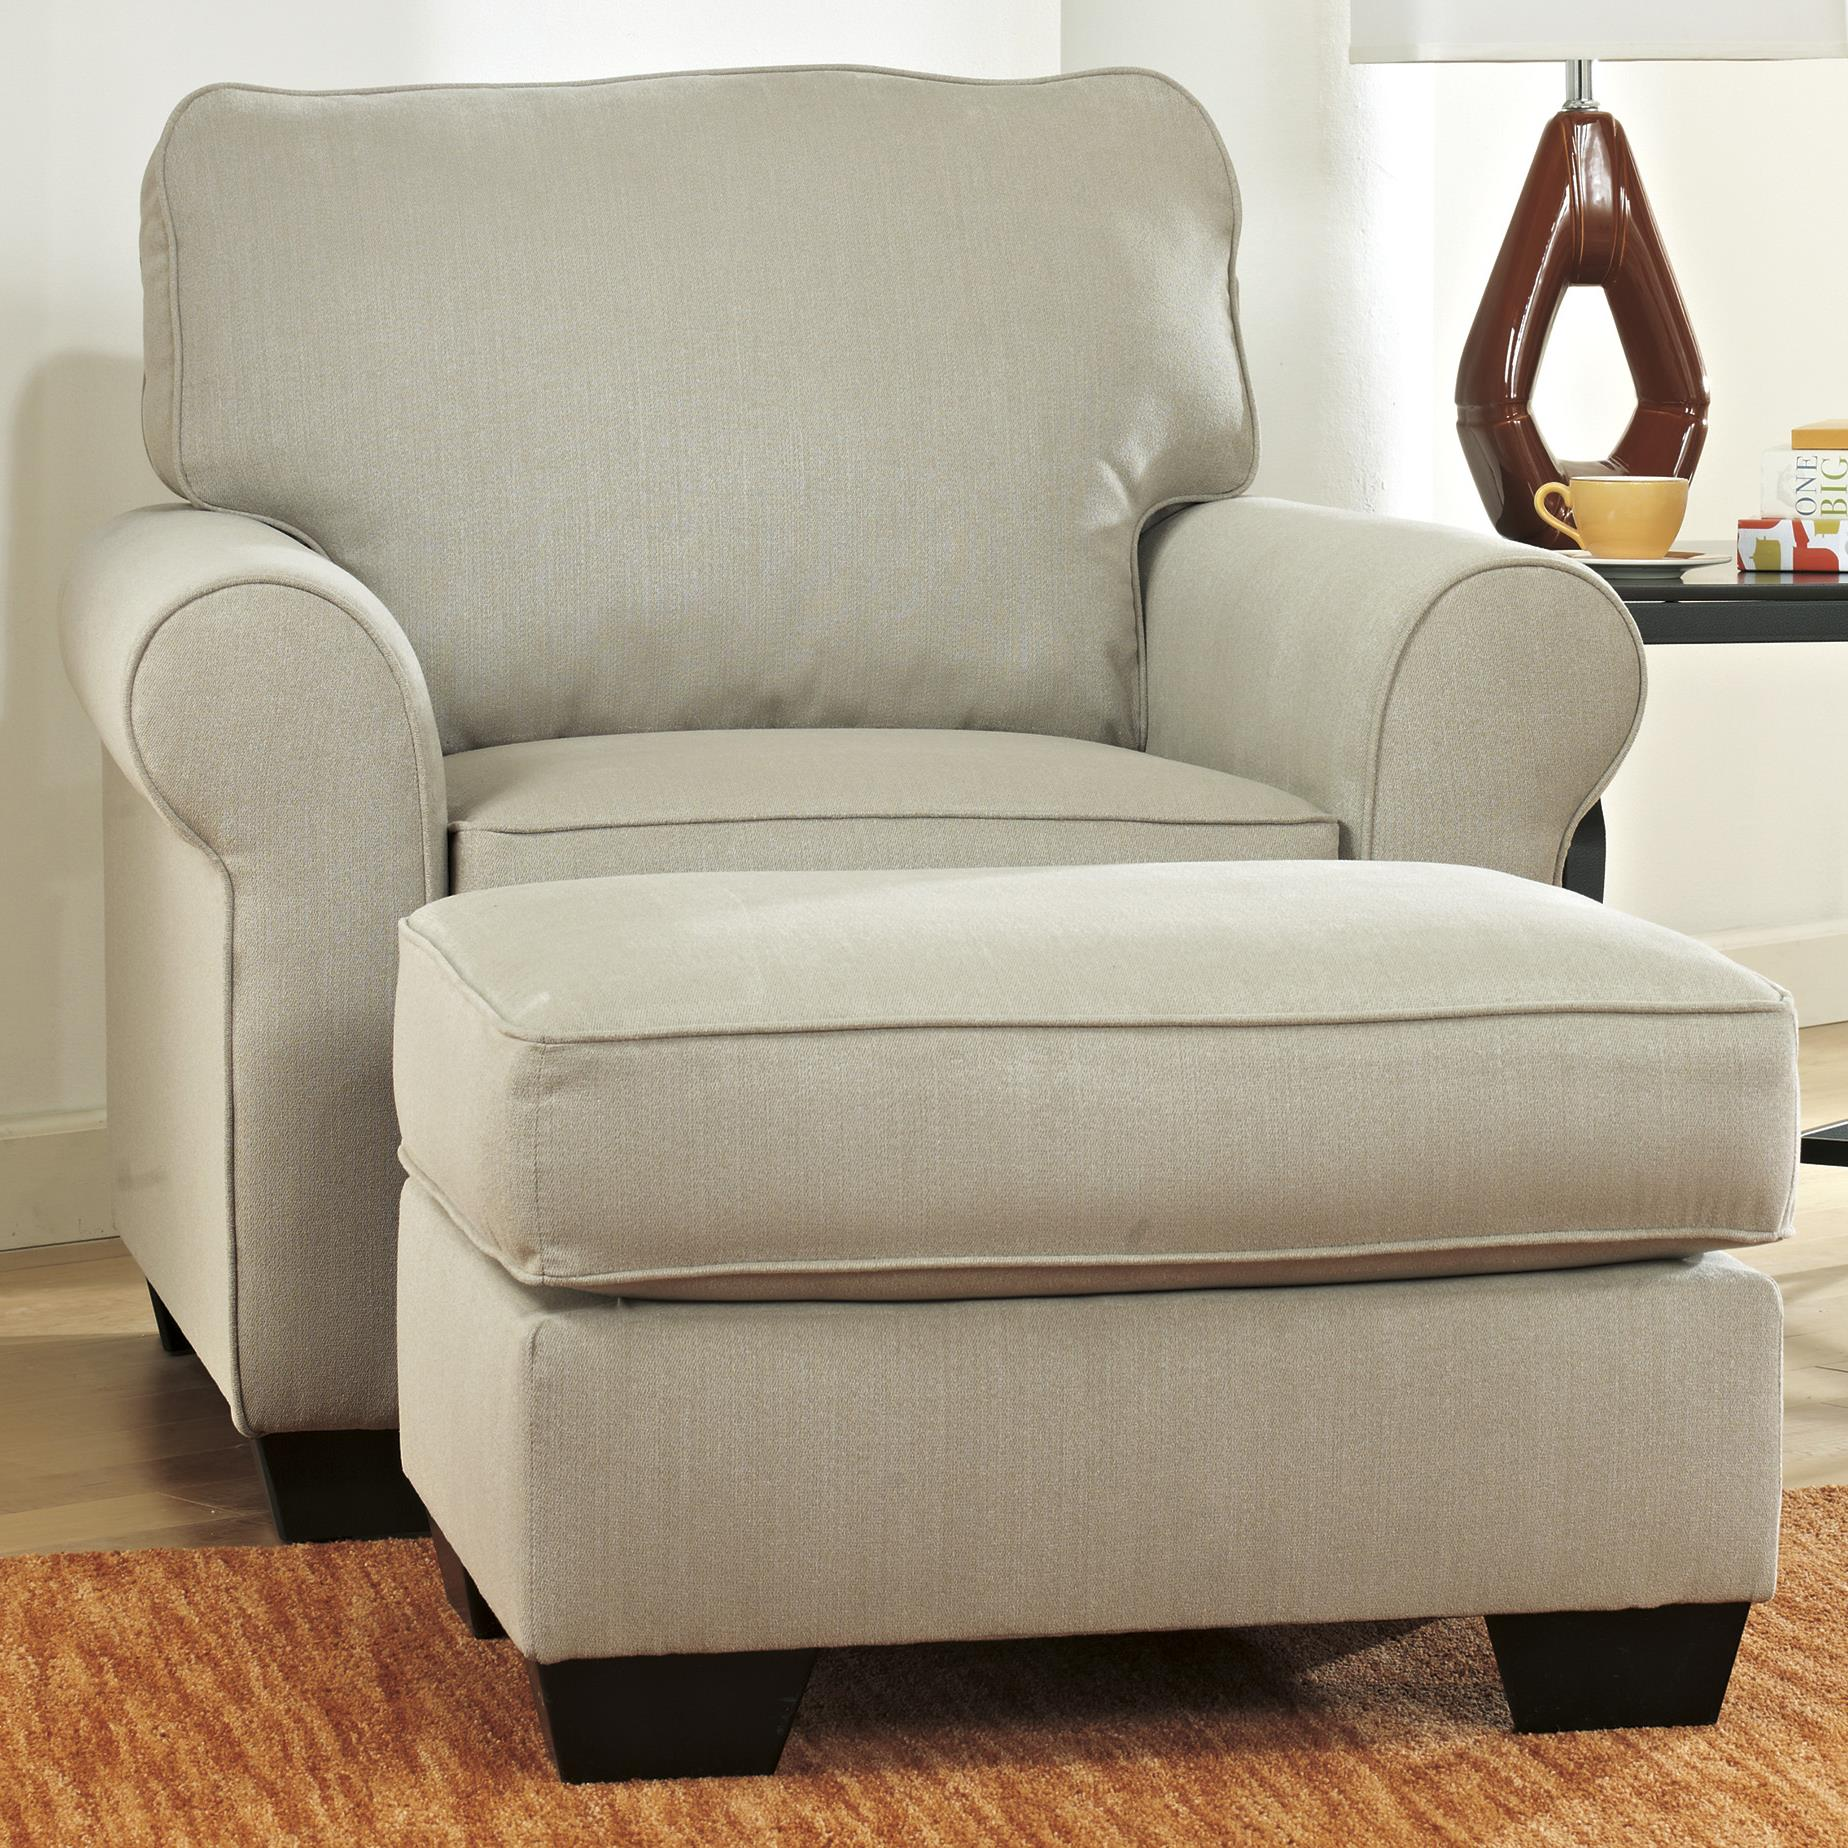 Ashley Furniture Caci Chair & Ottoman - Item Number: 8820220+14